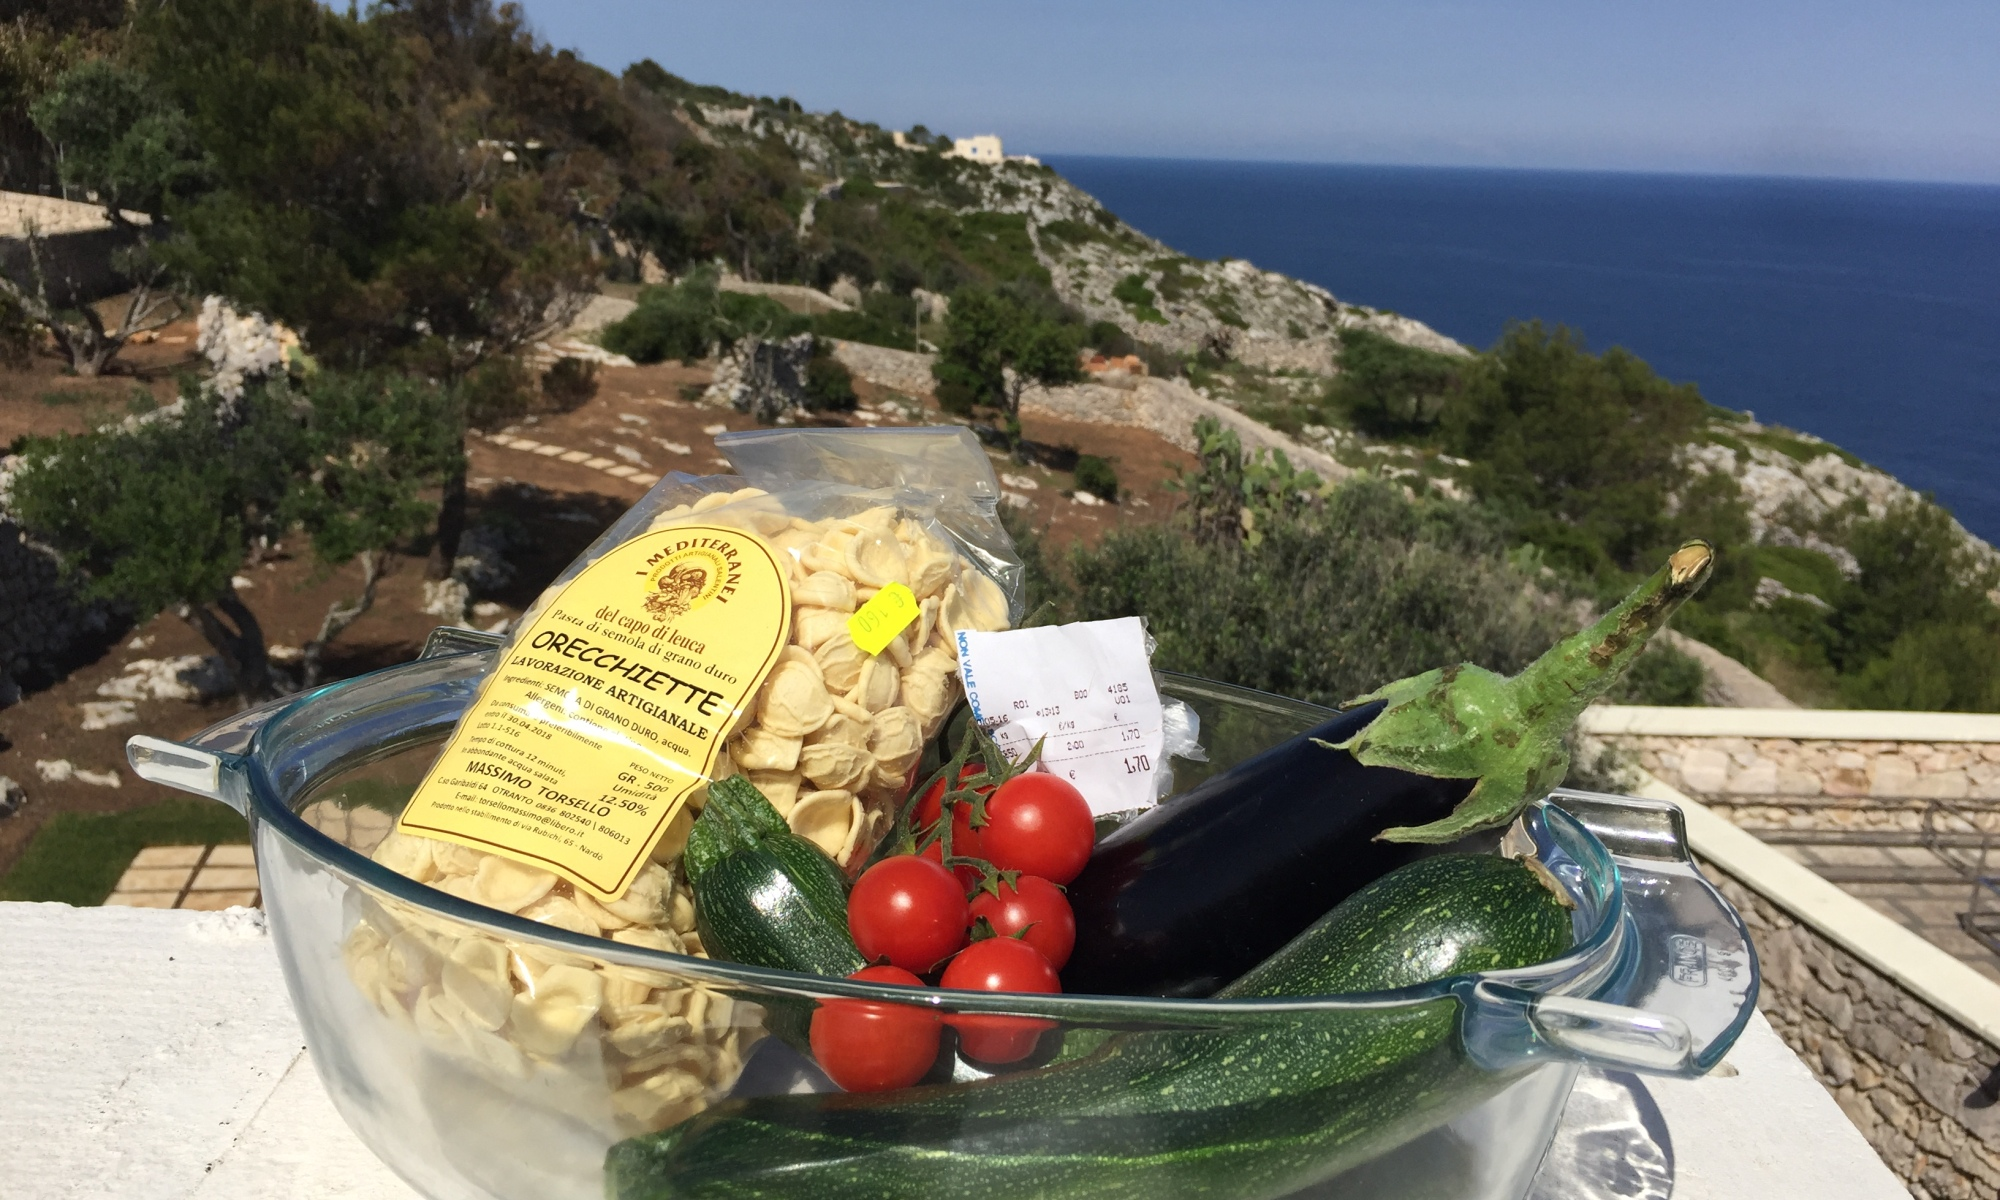 Groceries in Leuca